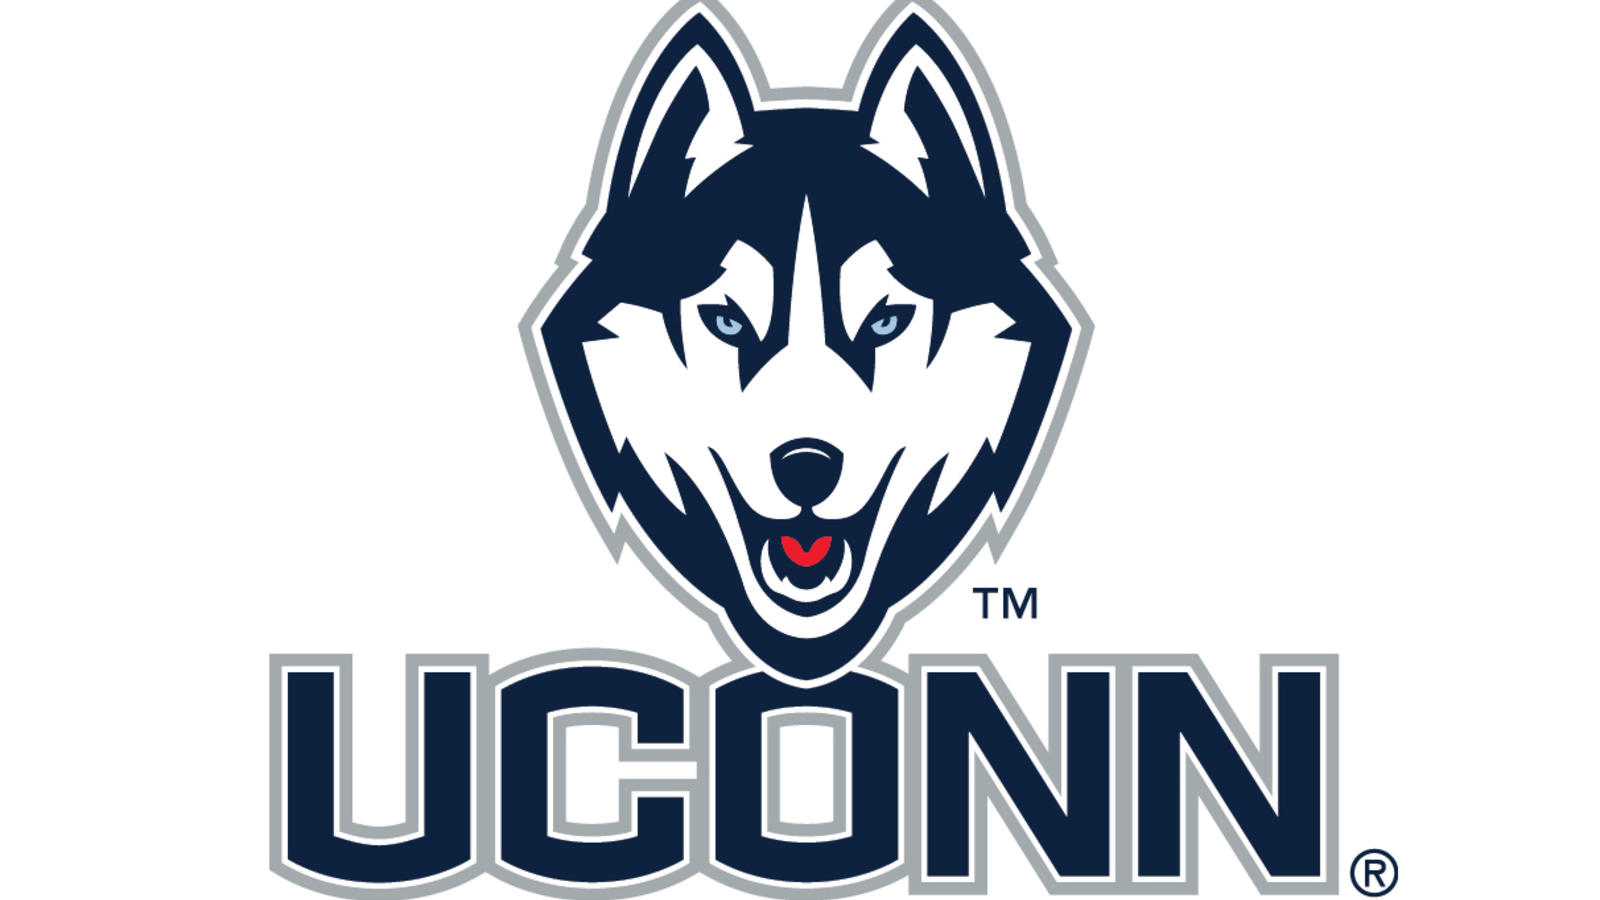 uconn-huskies-logo-word-mark